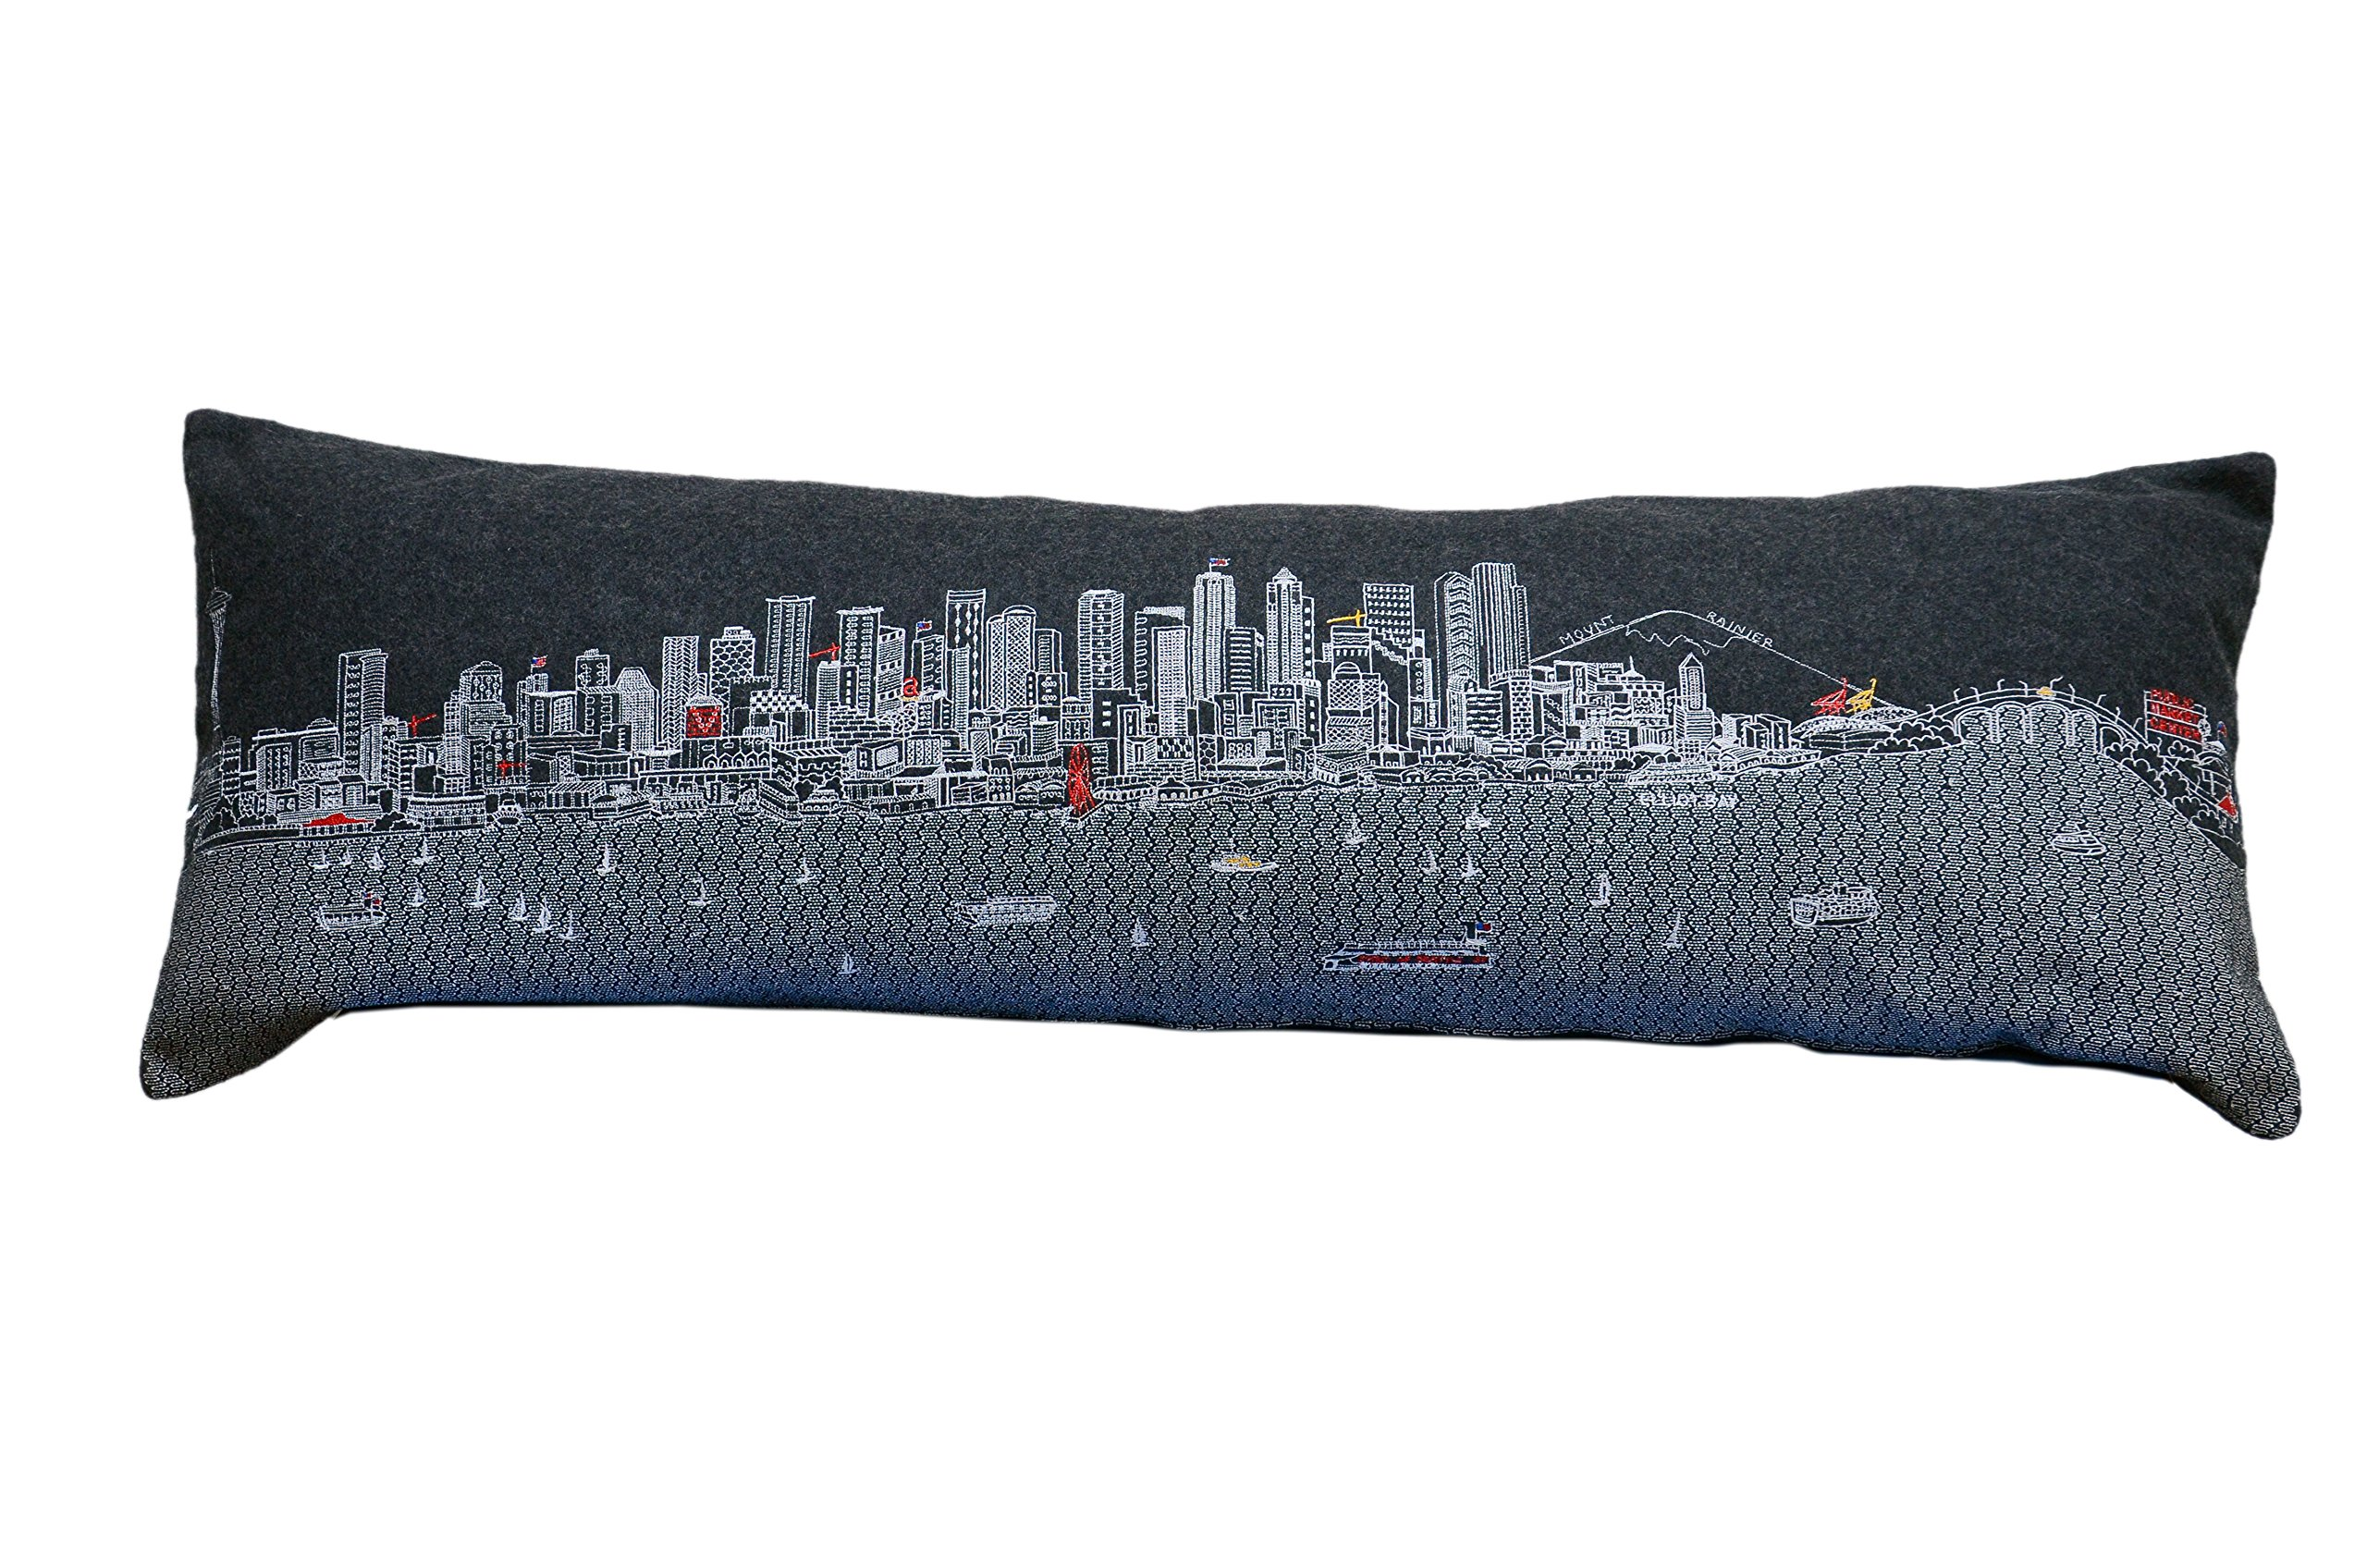 Beyond Cushions Polyester Throw Pillows Beyond Cushions Seattle Night Skyline King Size Embroidered Accent Pillow 46 X 14 X 5 Inches Black Model # SEA-NGT-KNG